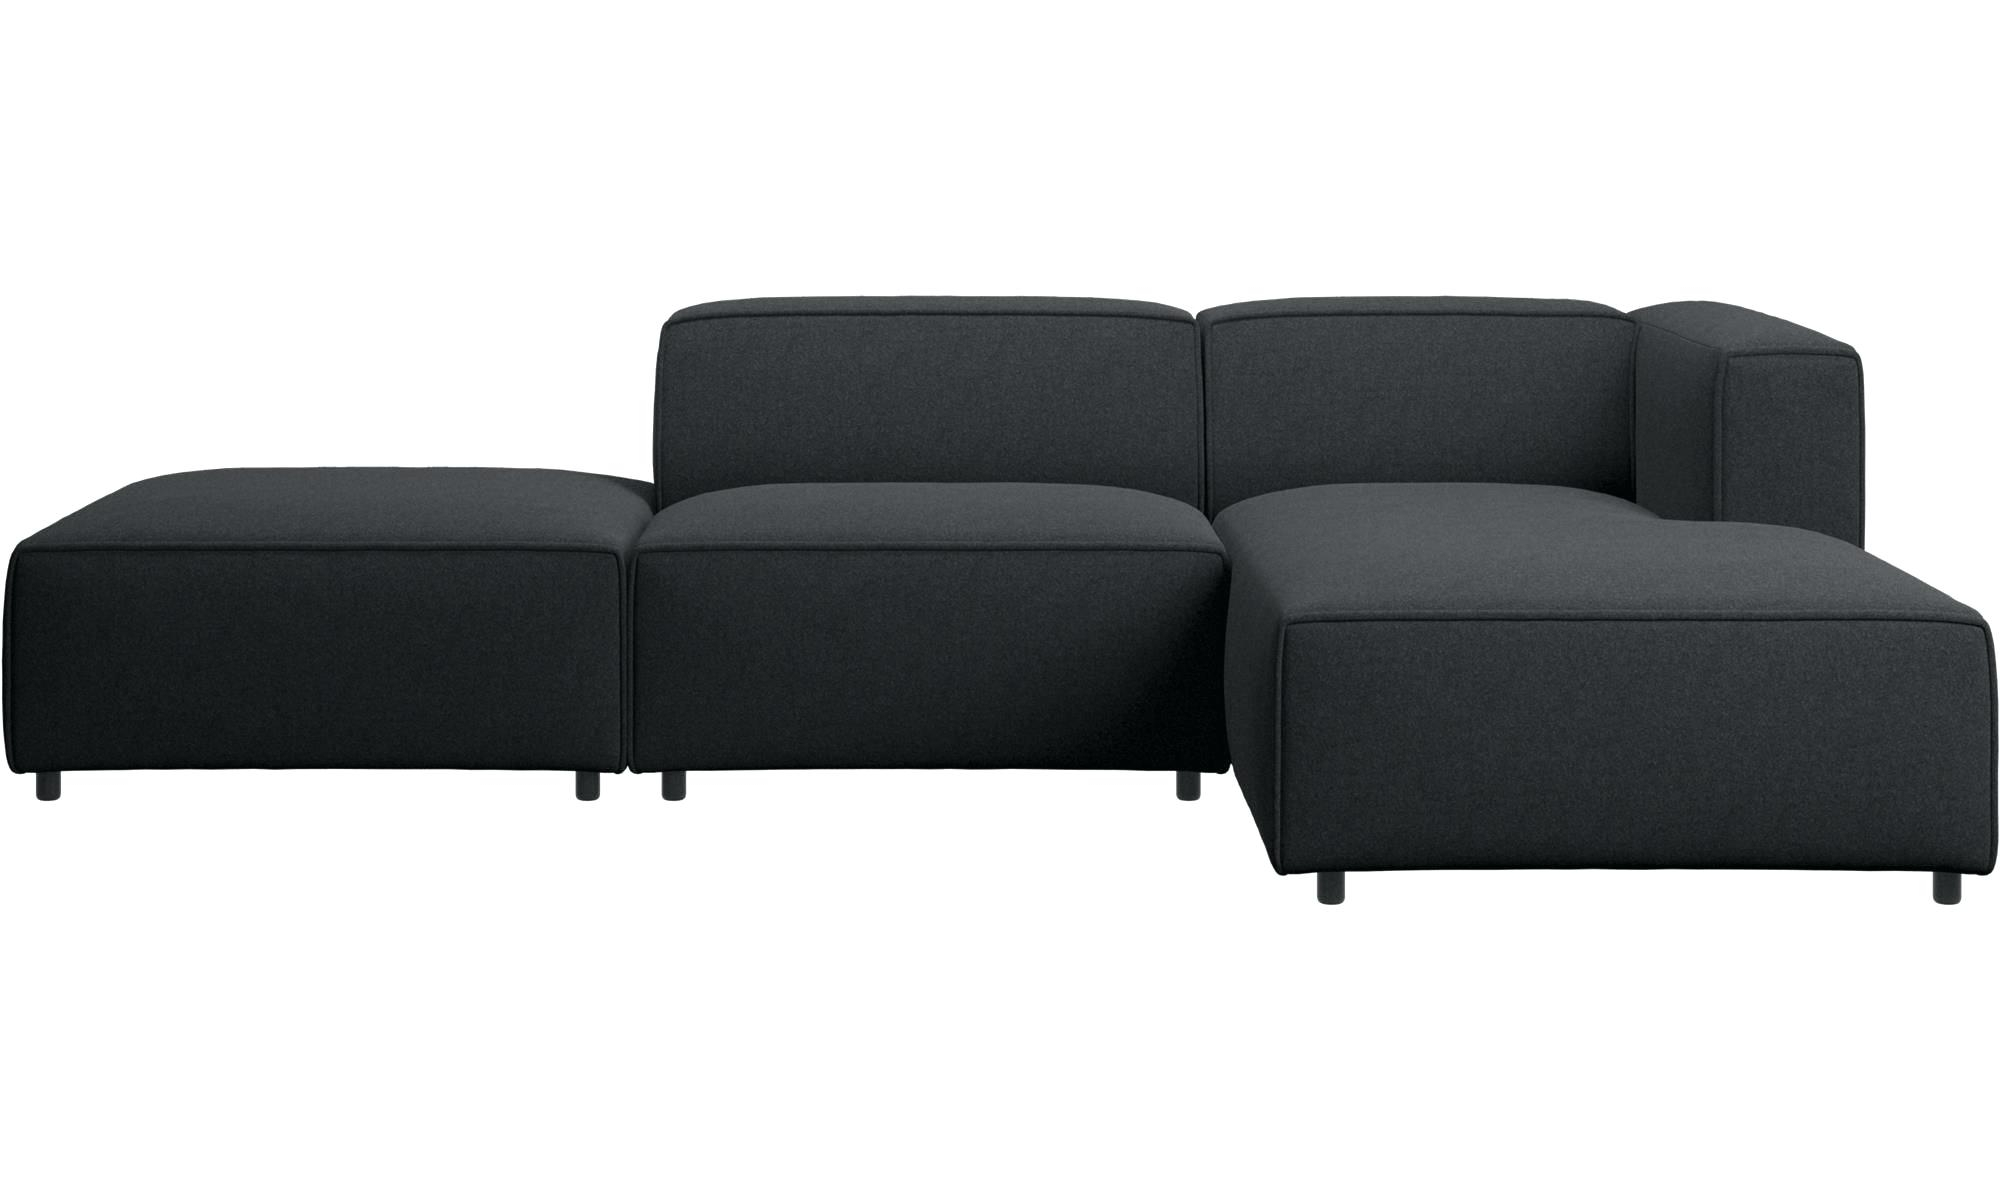 Trendy Varossa Chaise Lounge Recliner Chair Sofabeds Within Chaise Lounge Sofa – Javi (View 11 of 15)